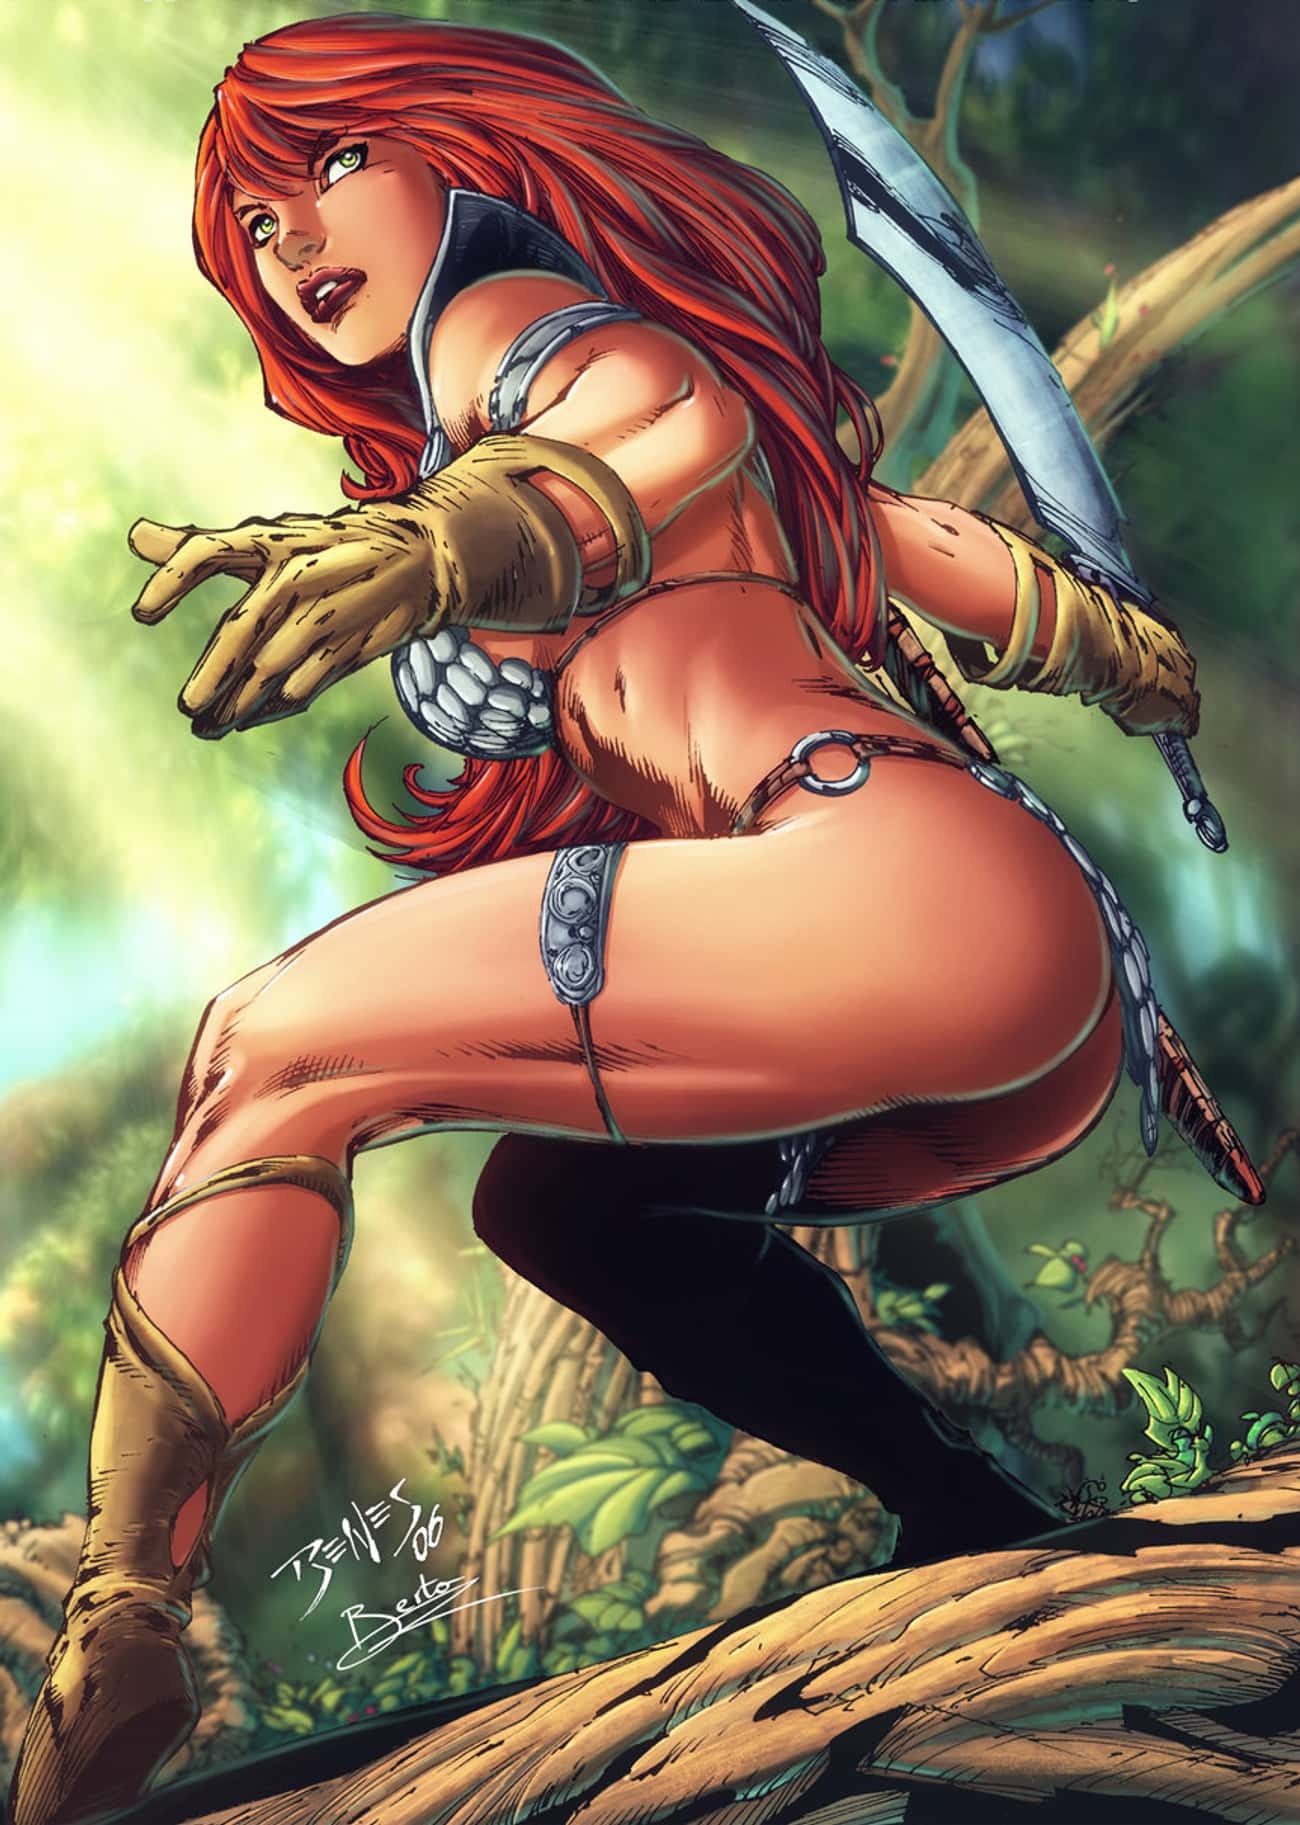 Red Sonja in Scale Armor, Gaun is listed (or ranked) 1 on the list Sexy Red Sonja Pictures